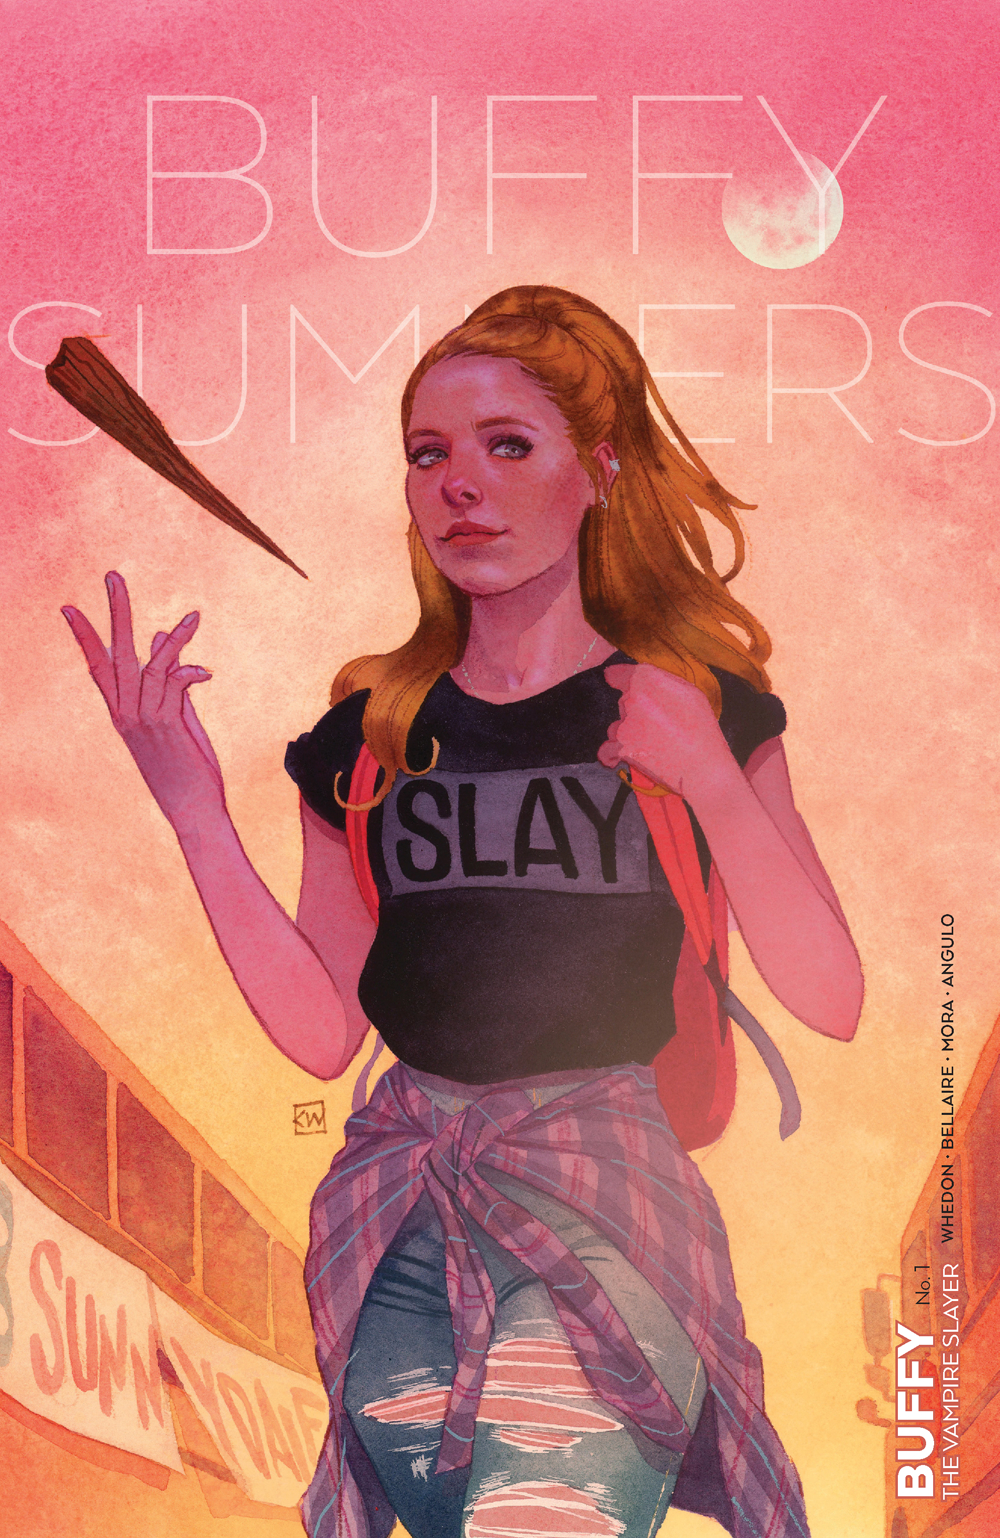 BUFFY THE VAMPIRE SLAYER #1 WADA VAR